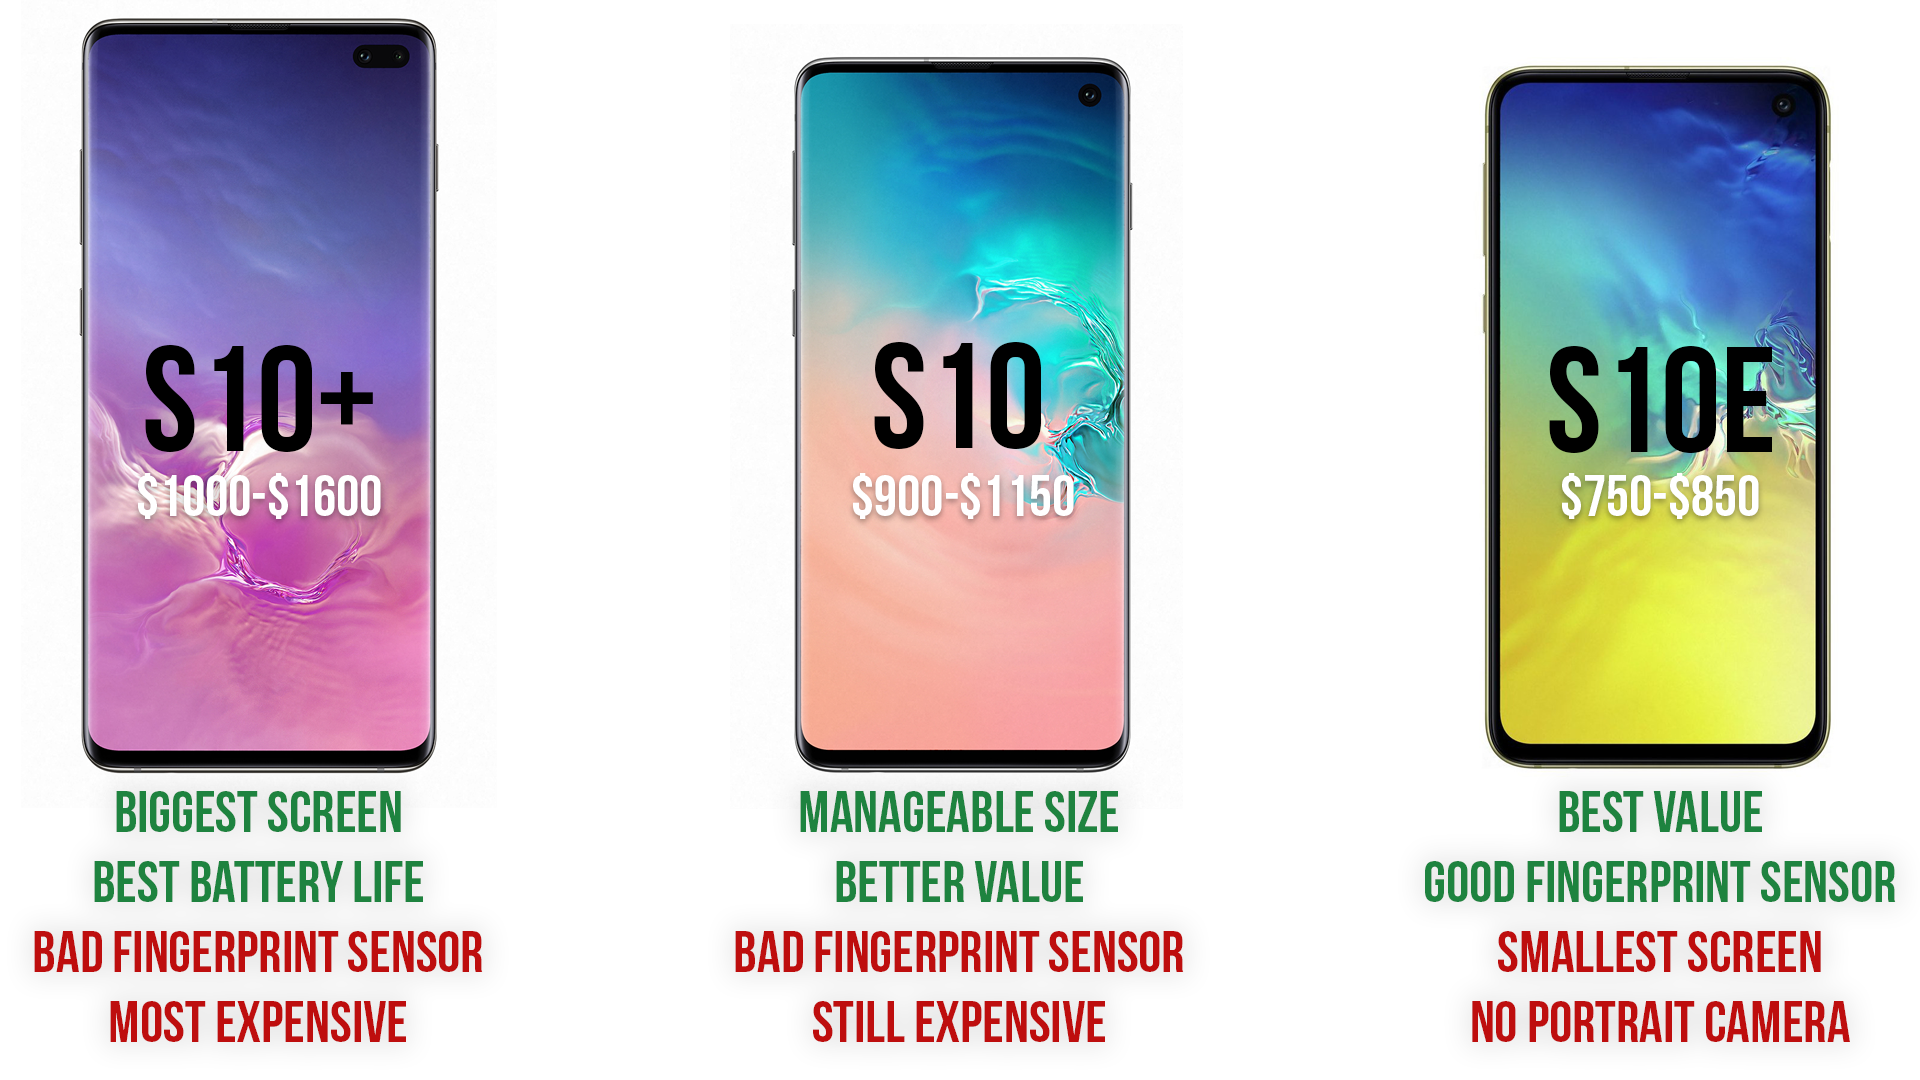 Galaxy S10+, S10, and S10e buyer's guide: Choosing the right Samsung phone in 2019